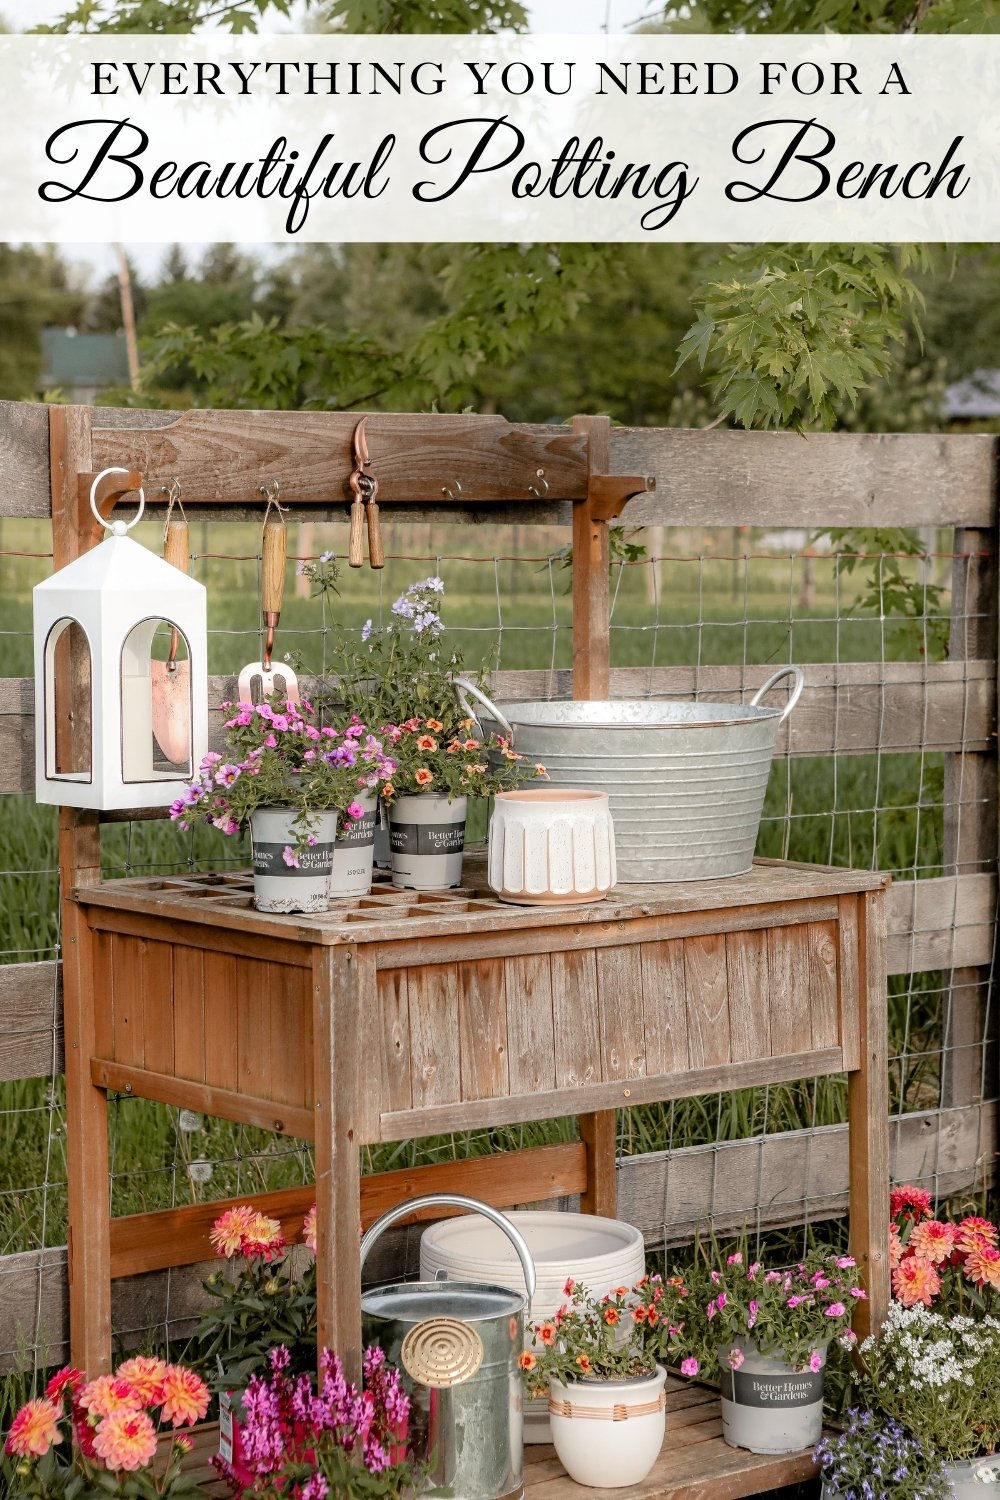 Everything you need for a beautiful potting bench